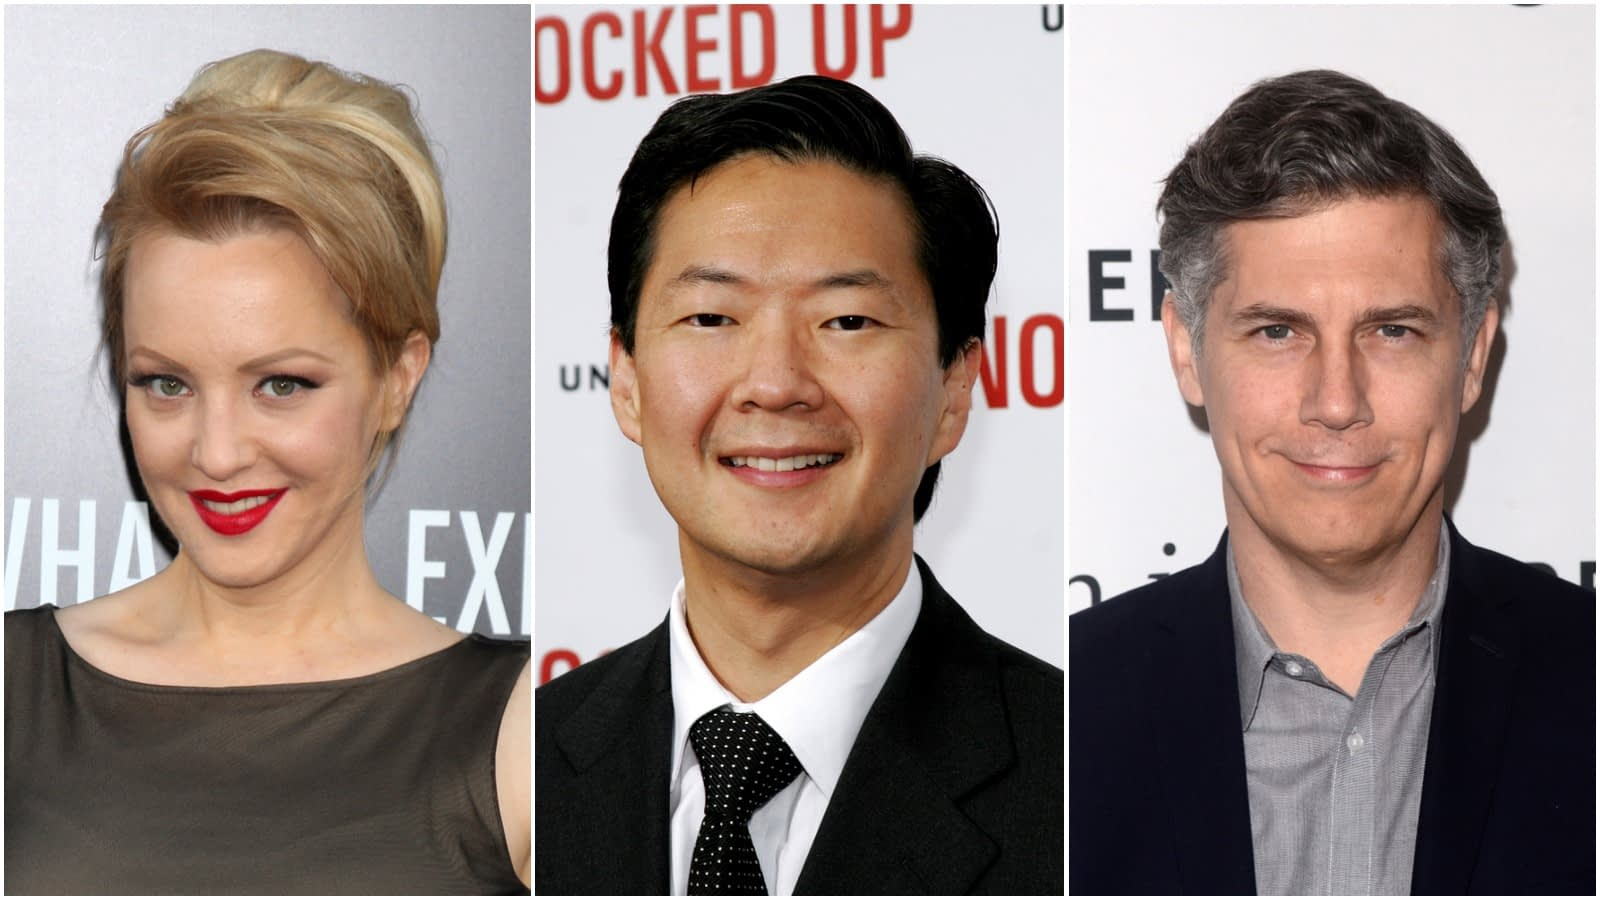 Wendi McLendon-Covey, Ken Jeong, Chris Parnell